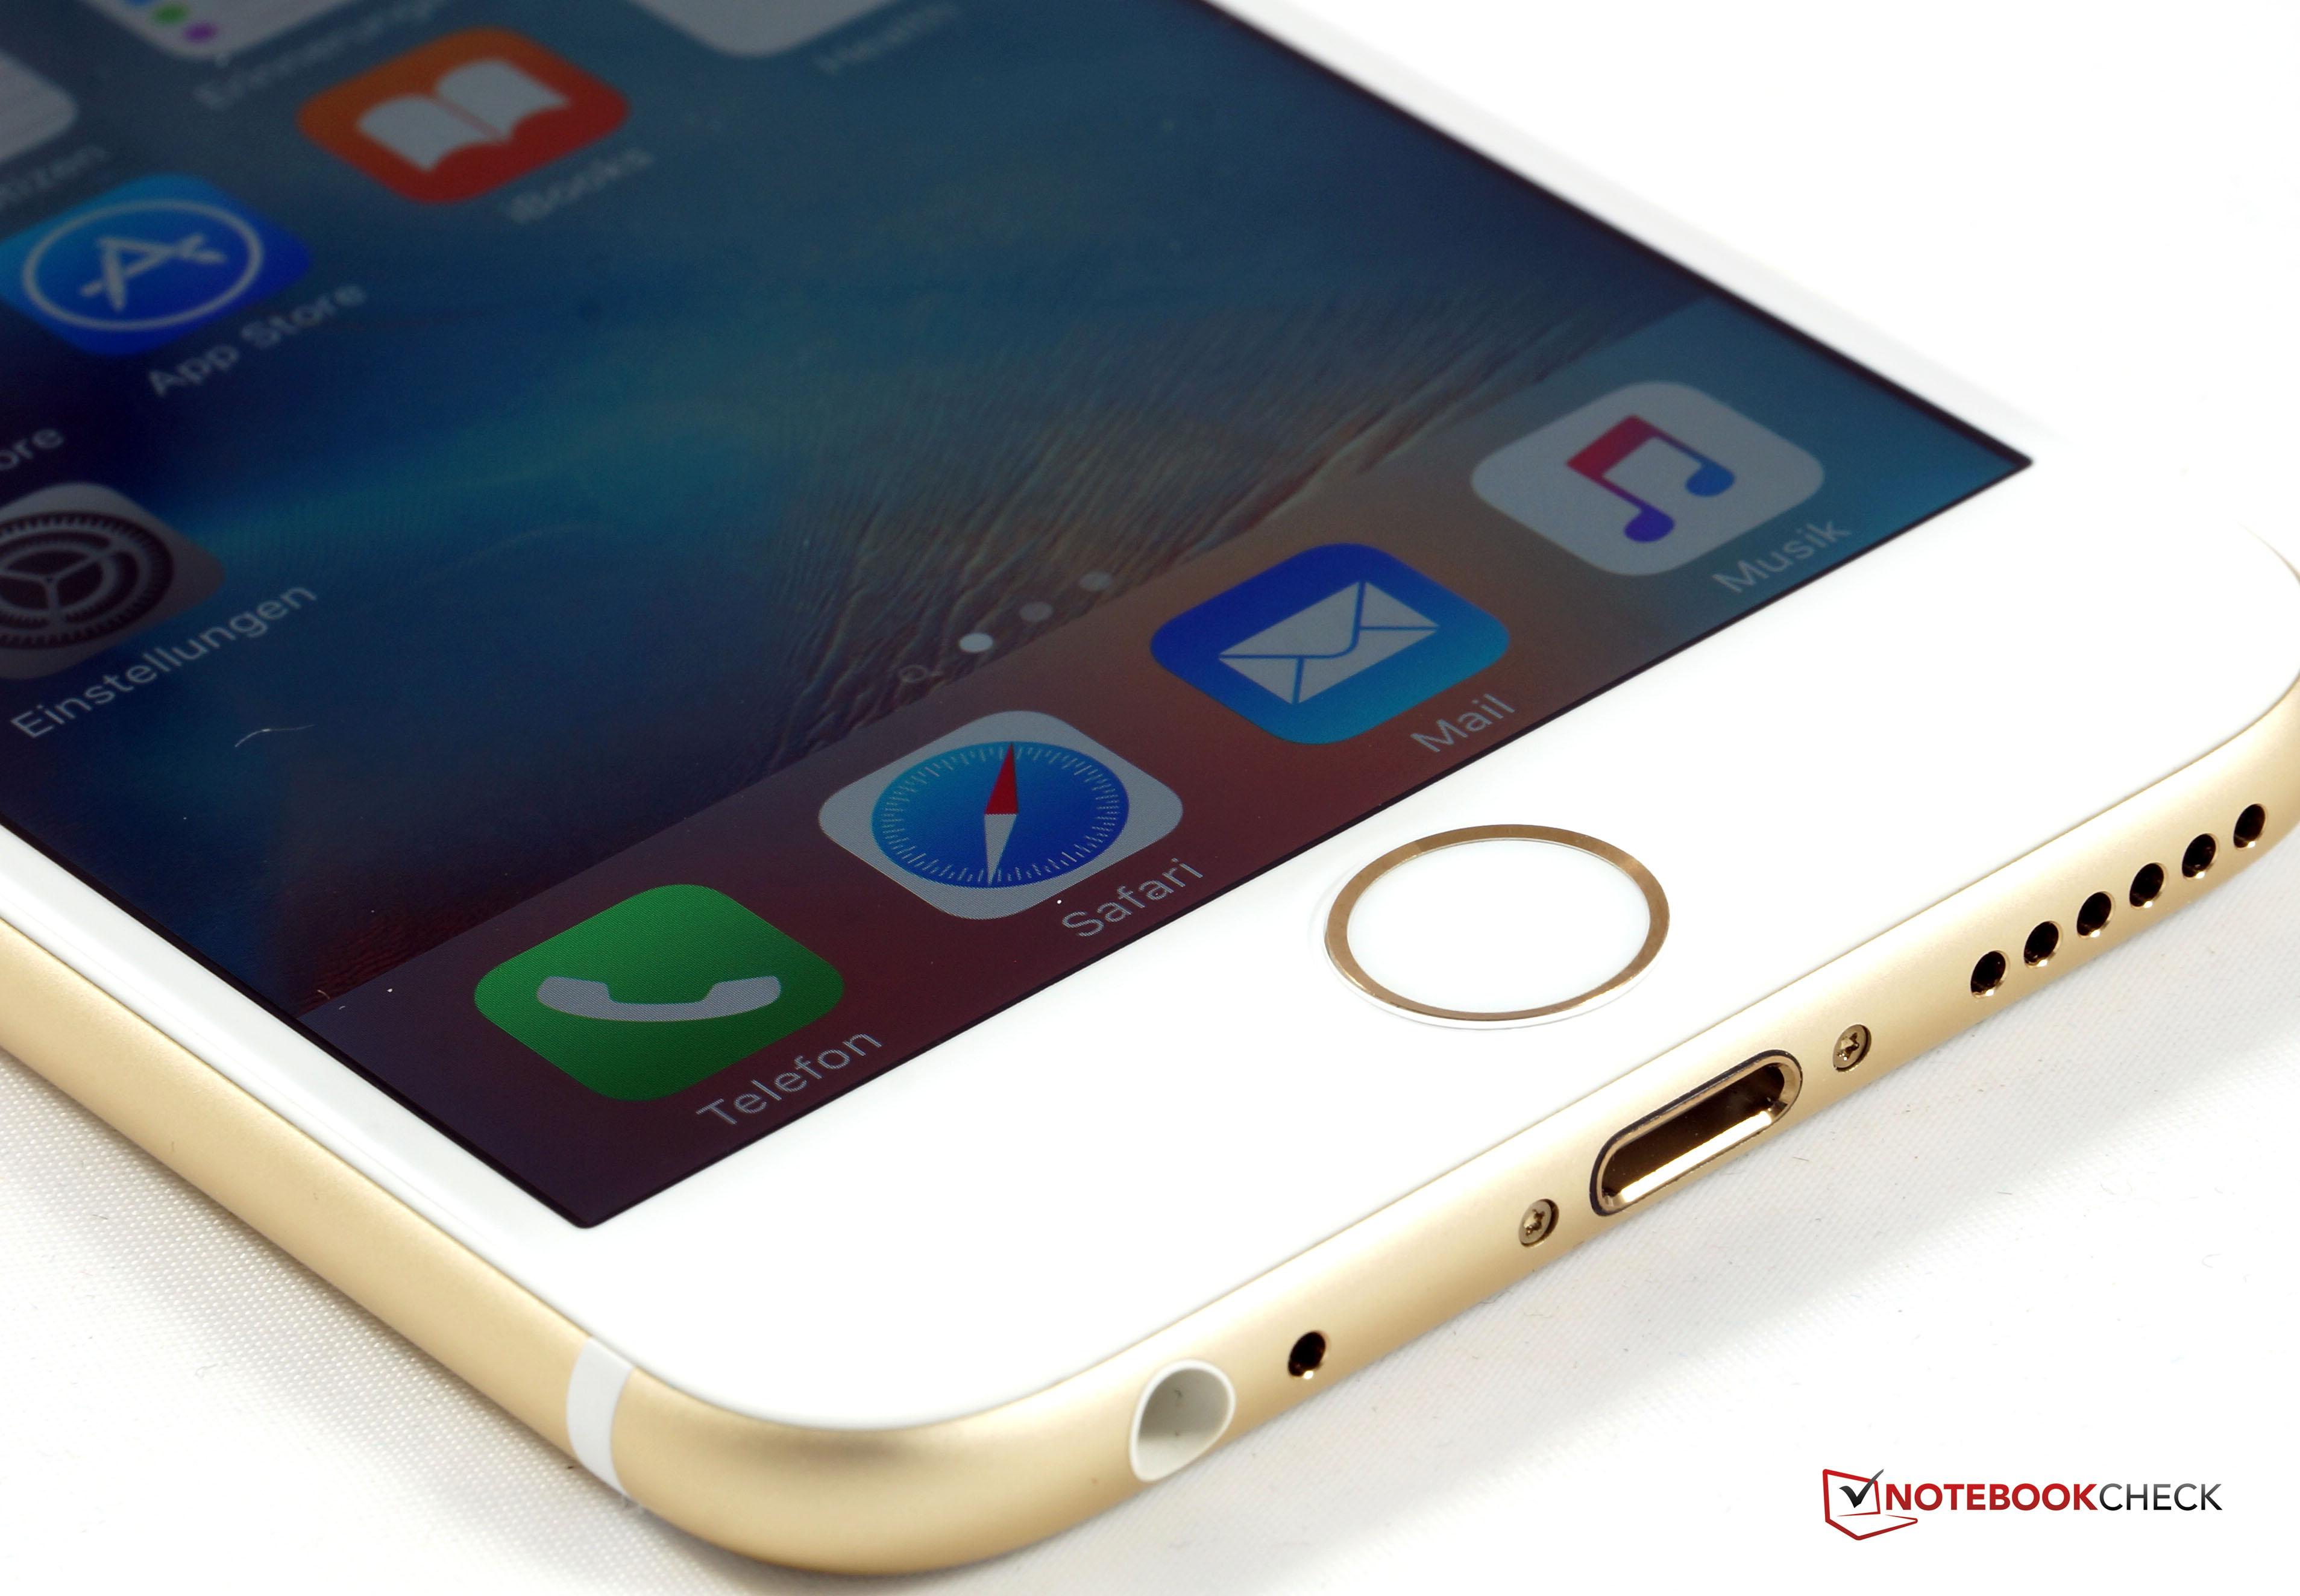 Test Apple iPhone 6S Smartphone - Notebookcheck.com Tests